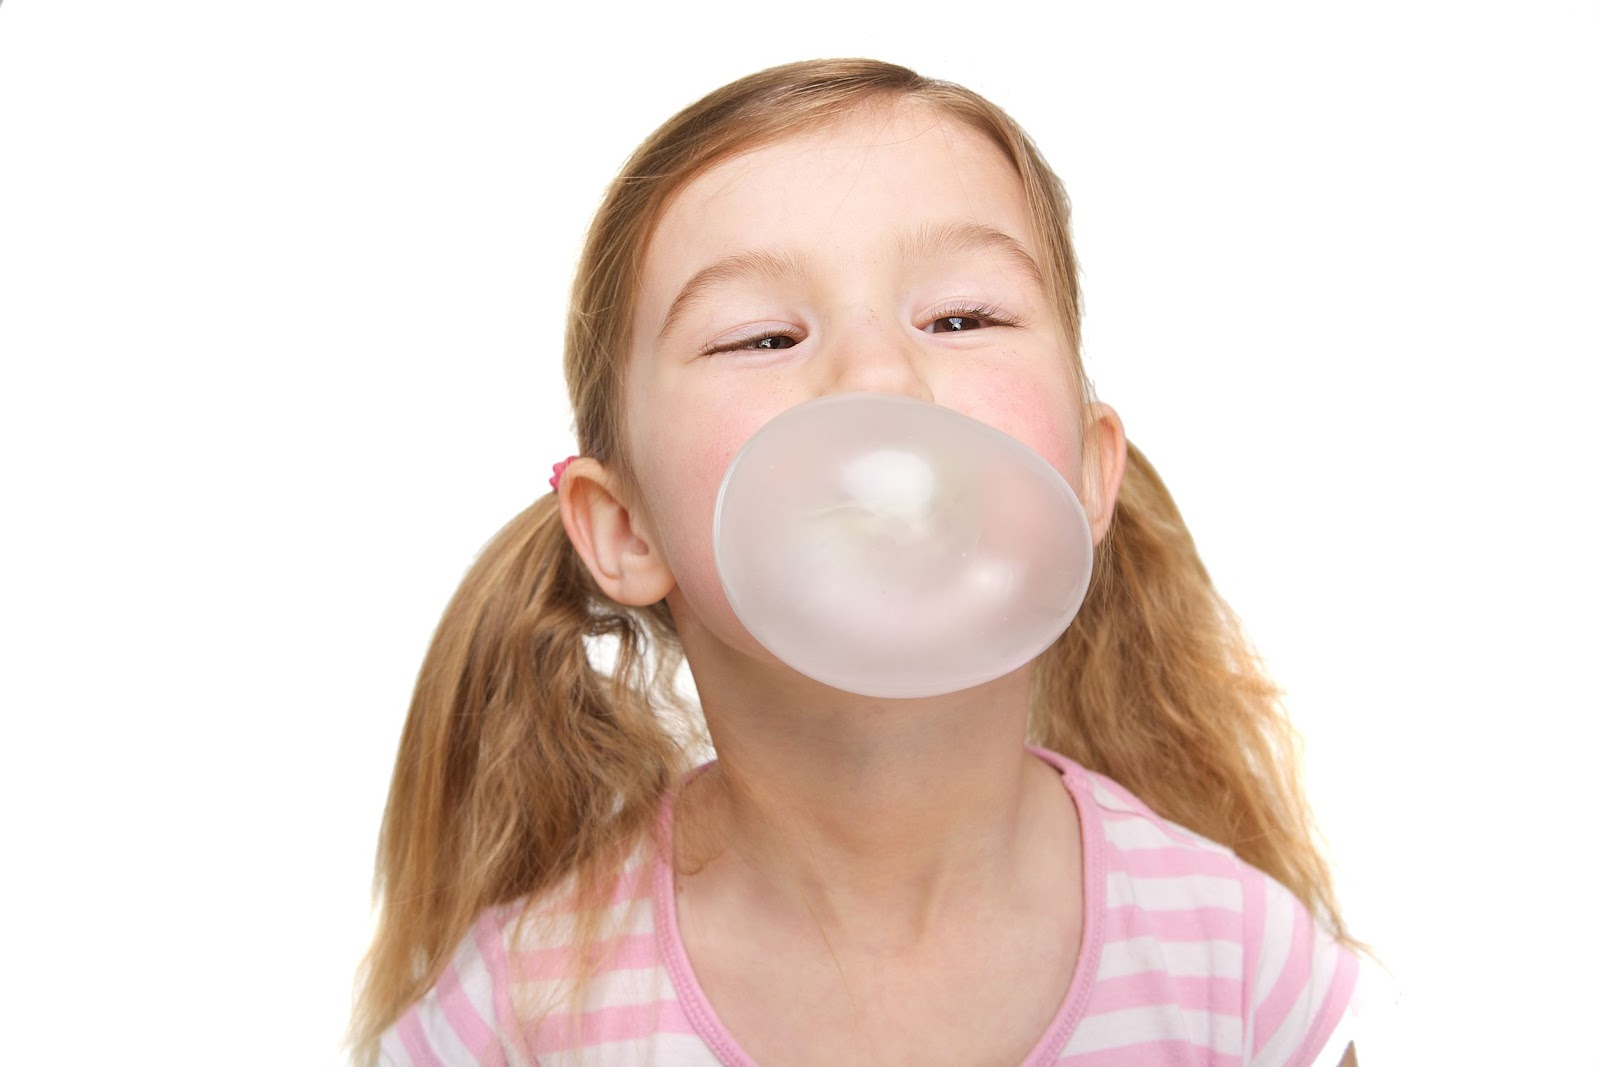 Image result for blowing bubble gum